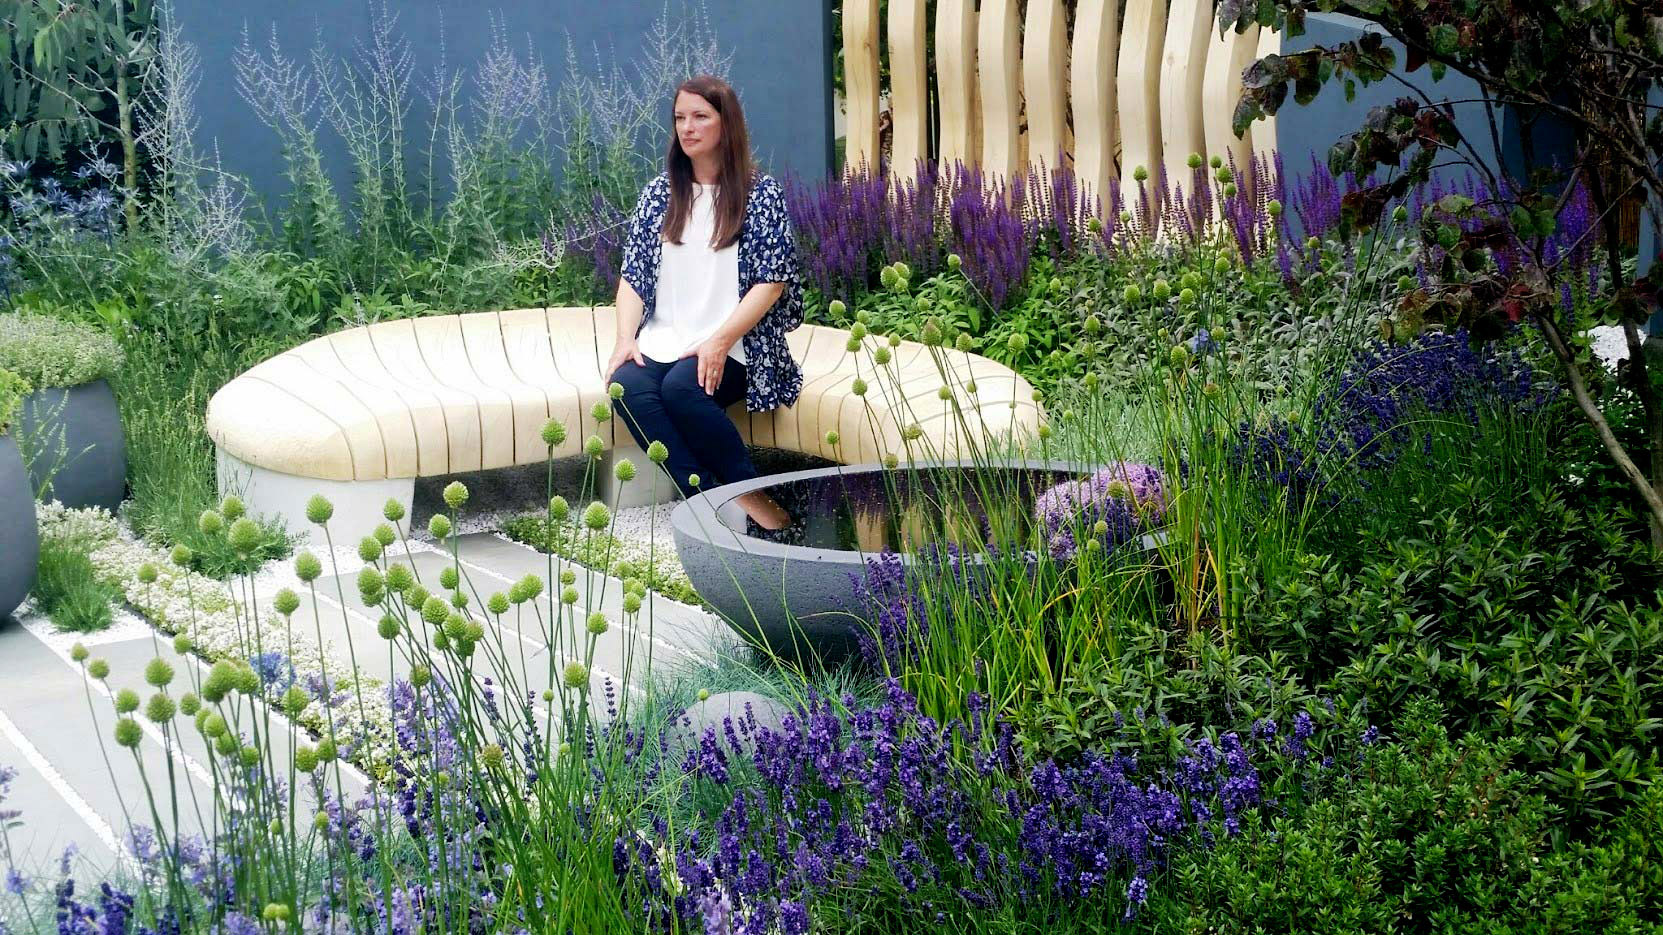 Rachel de Thame sitting in Rae Wilkinson's RHS Hampton Court garden. Rae Wilkinson Garden and Landscape Design - Garden Designer Sussex, Surrey, London, South-East England